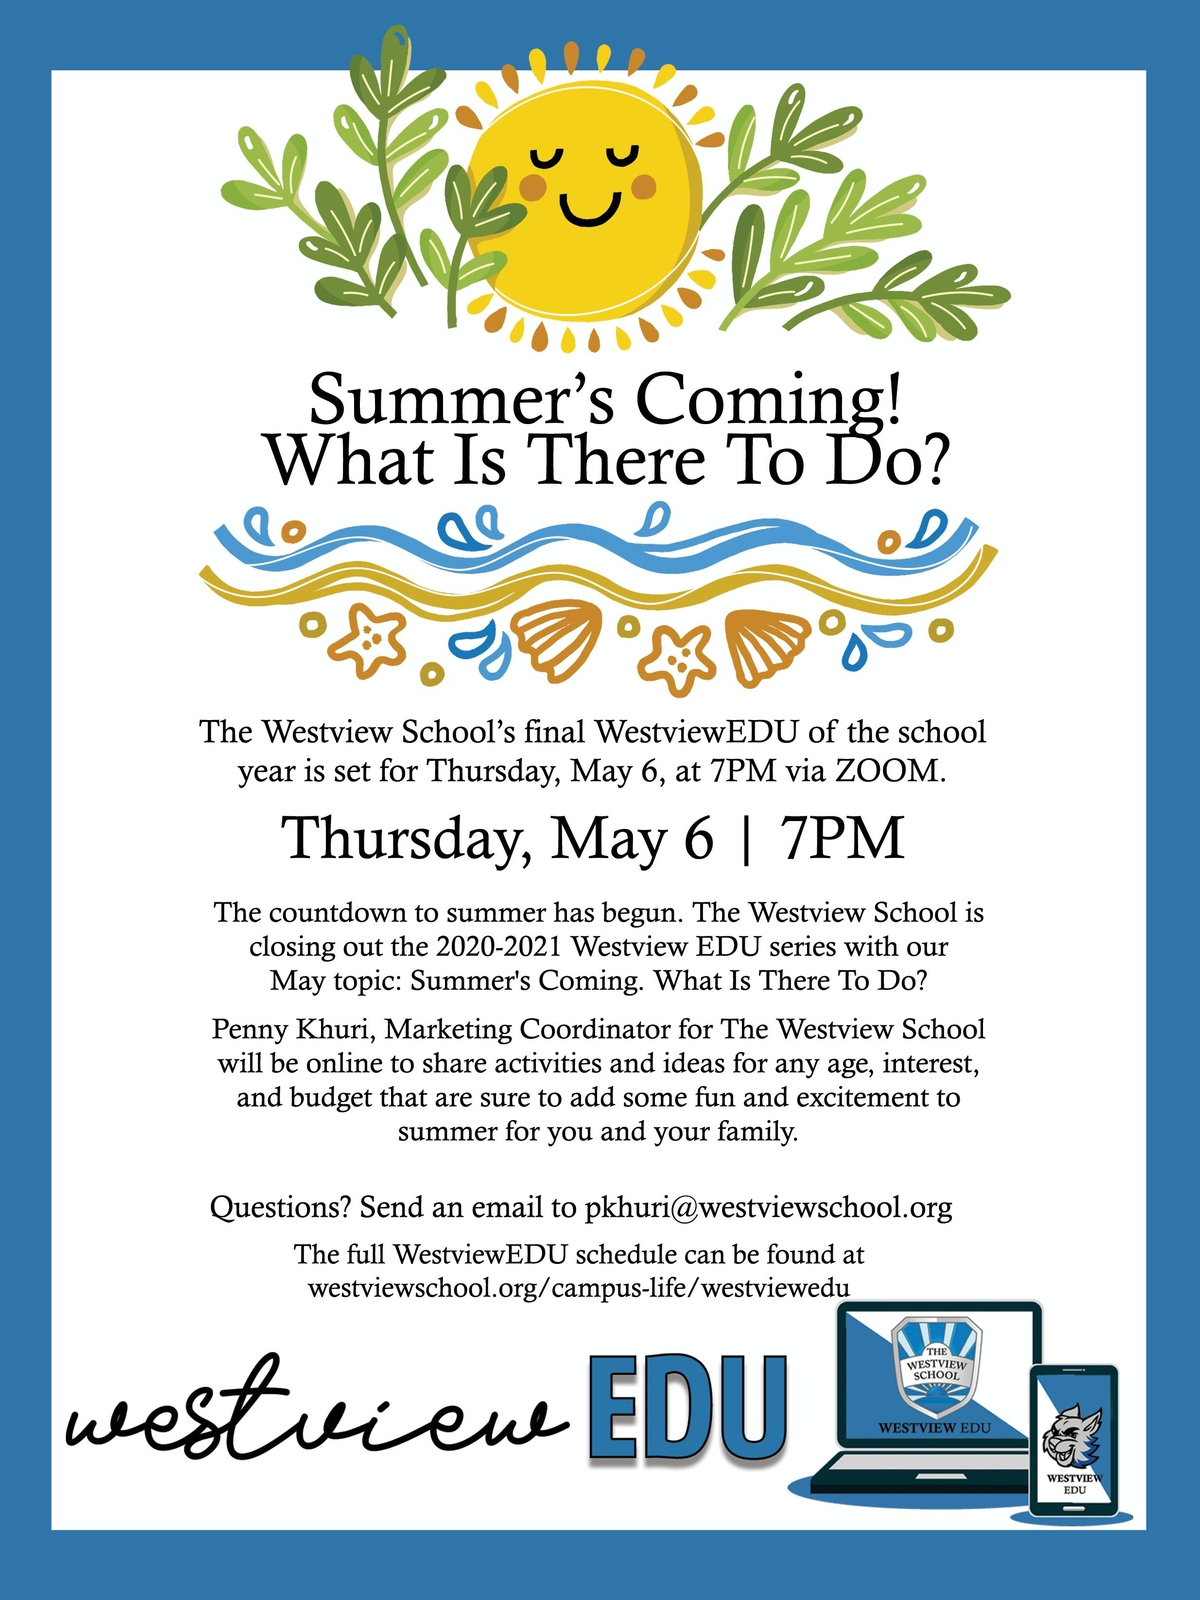 Westview EDU: Summer's Coming! What Is There To Do?